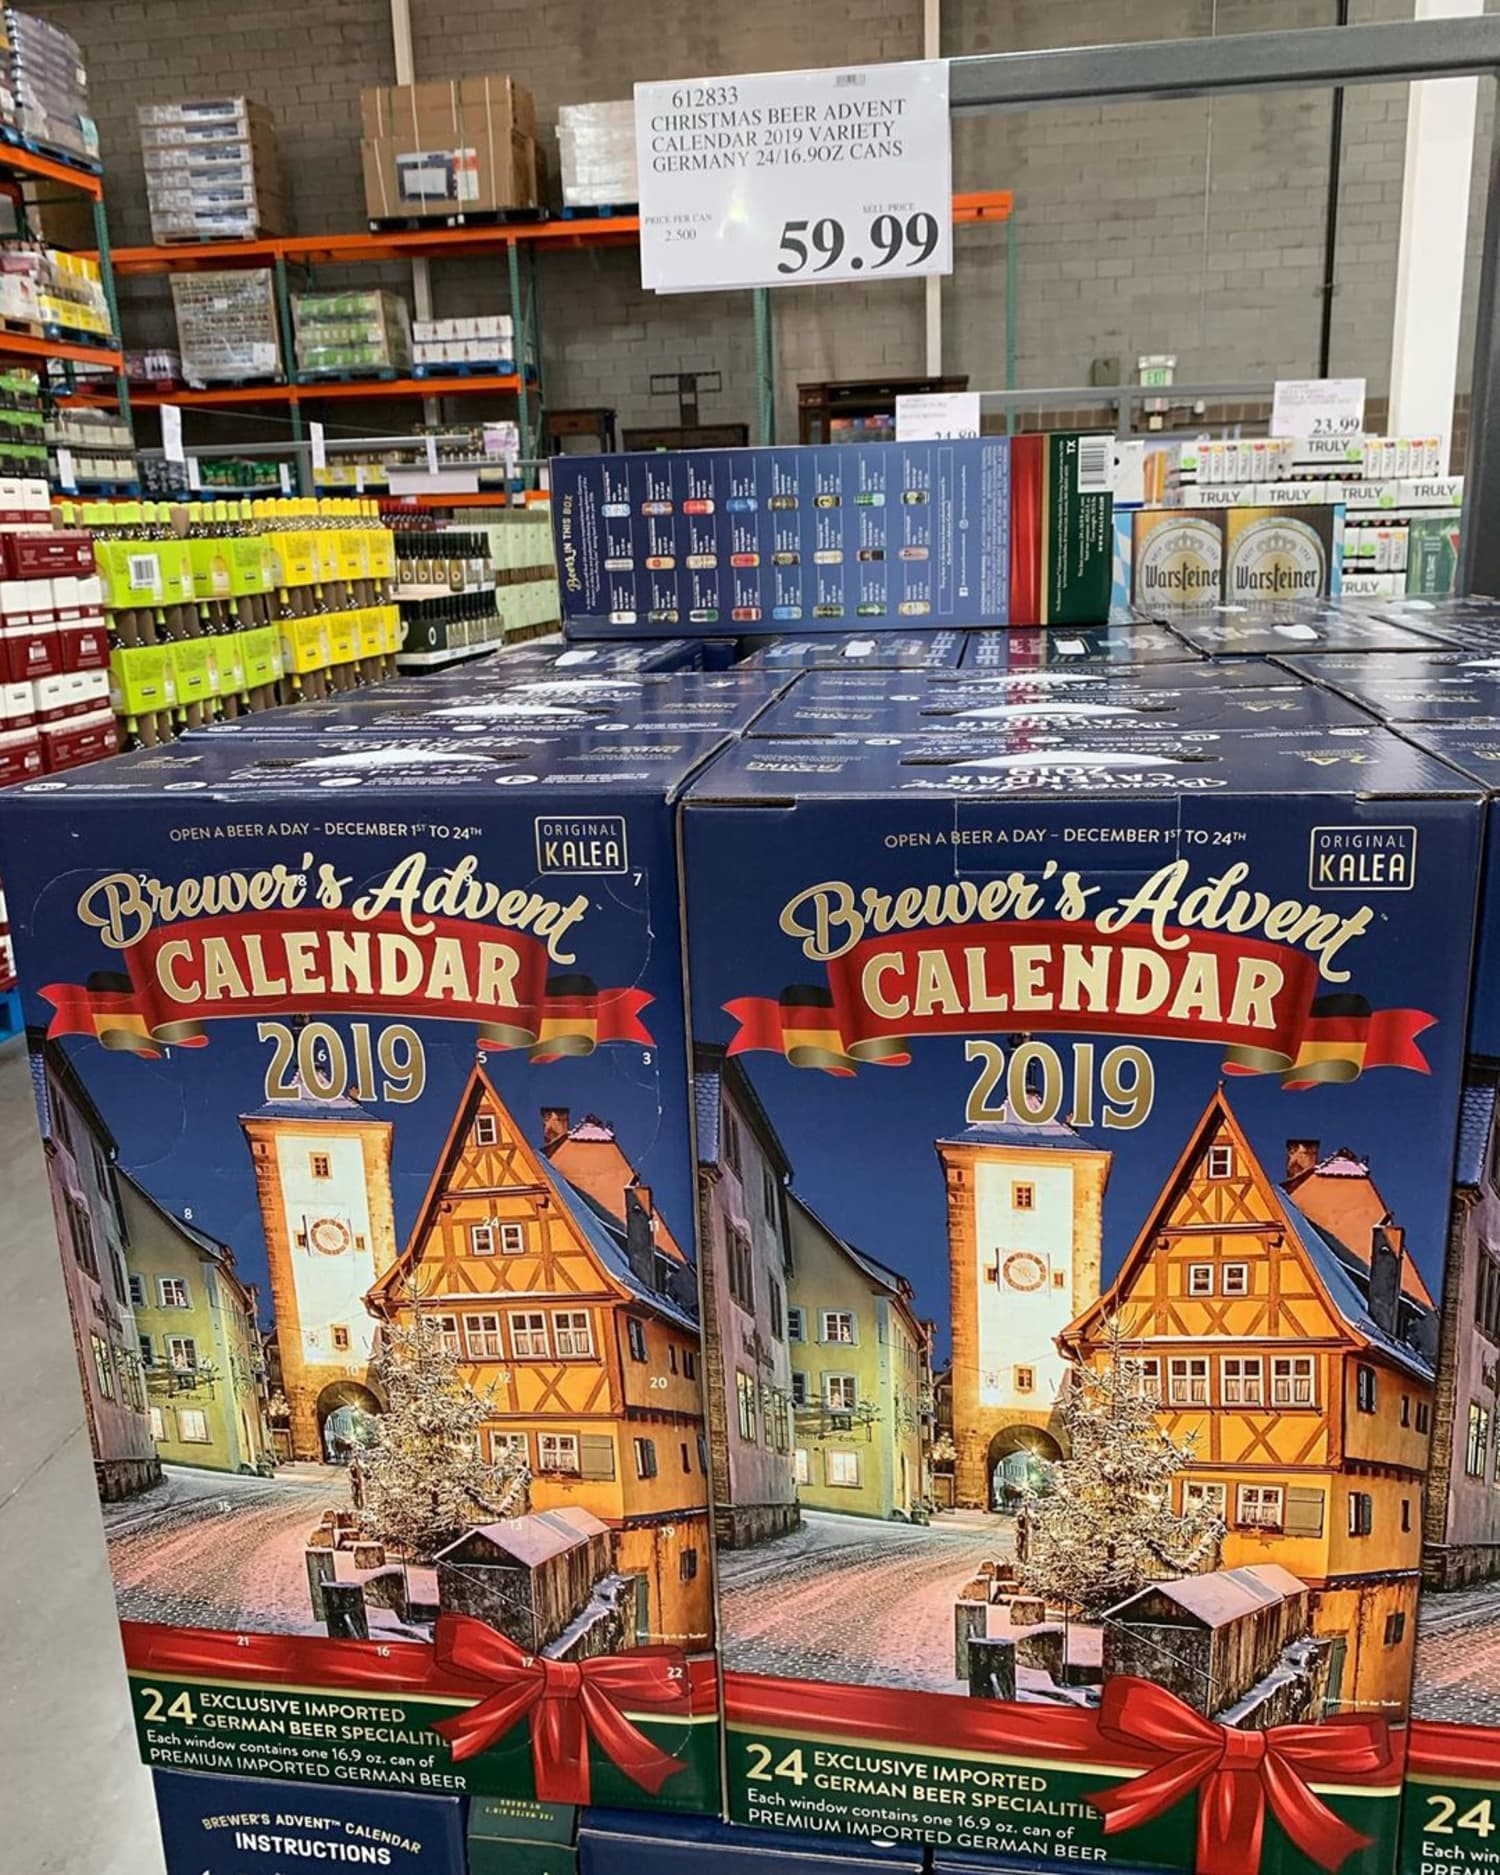 Costco Is Now Selling a German Beer Advent Calendar (and Yes, We Need One!)